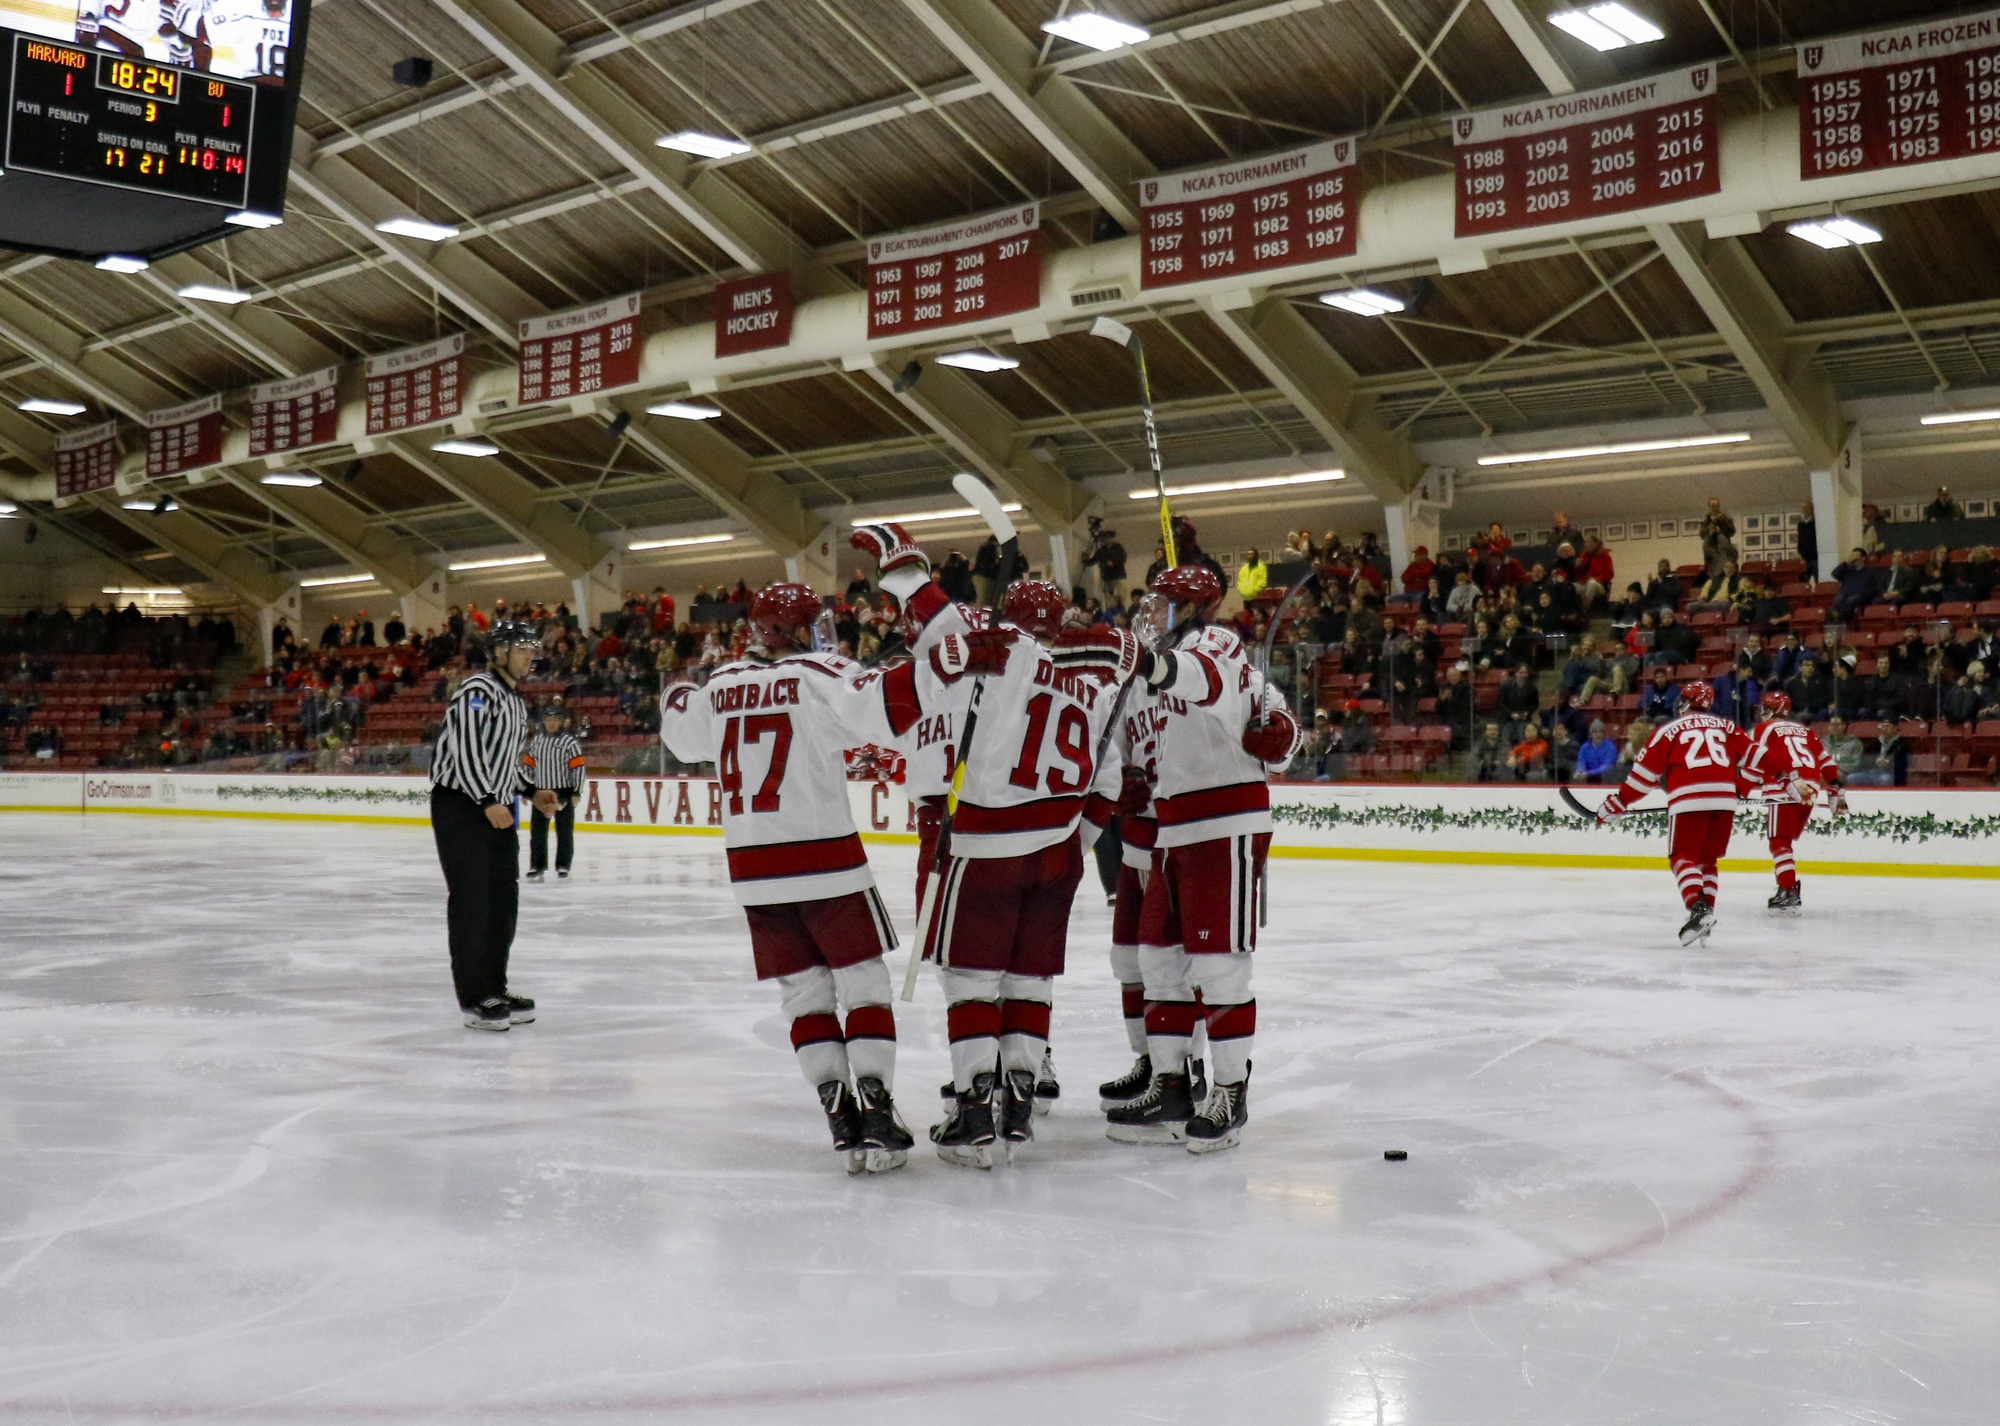 The Crimson powerplay executed again on Tuesday night, maintaining its scorching 36 percent effectiveness through Harvard's first 13 contests.